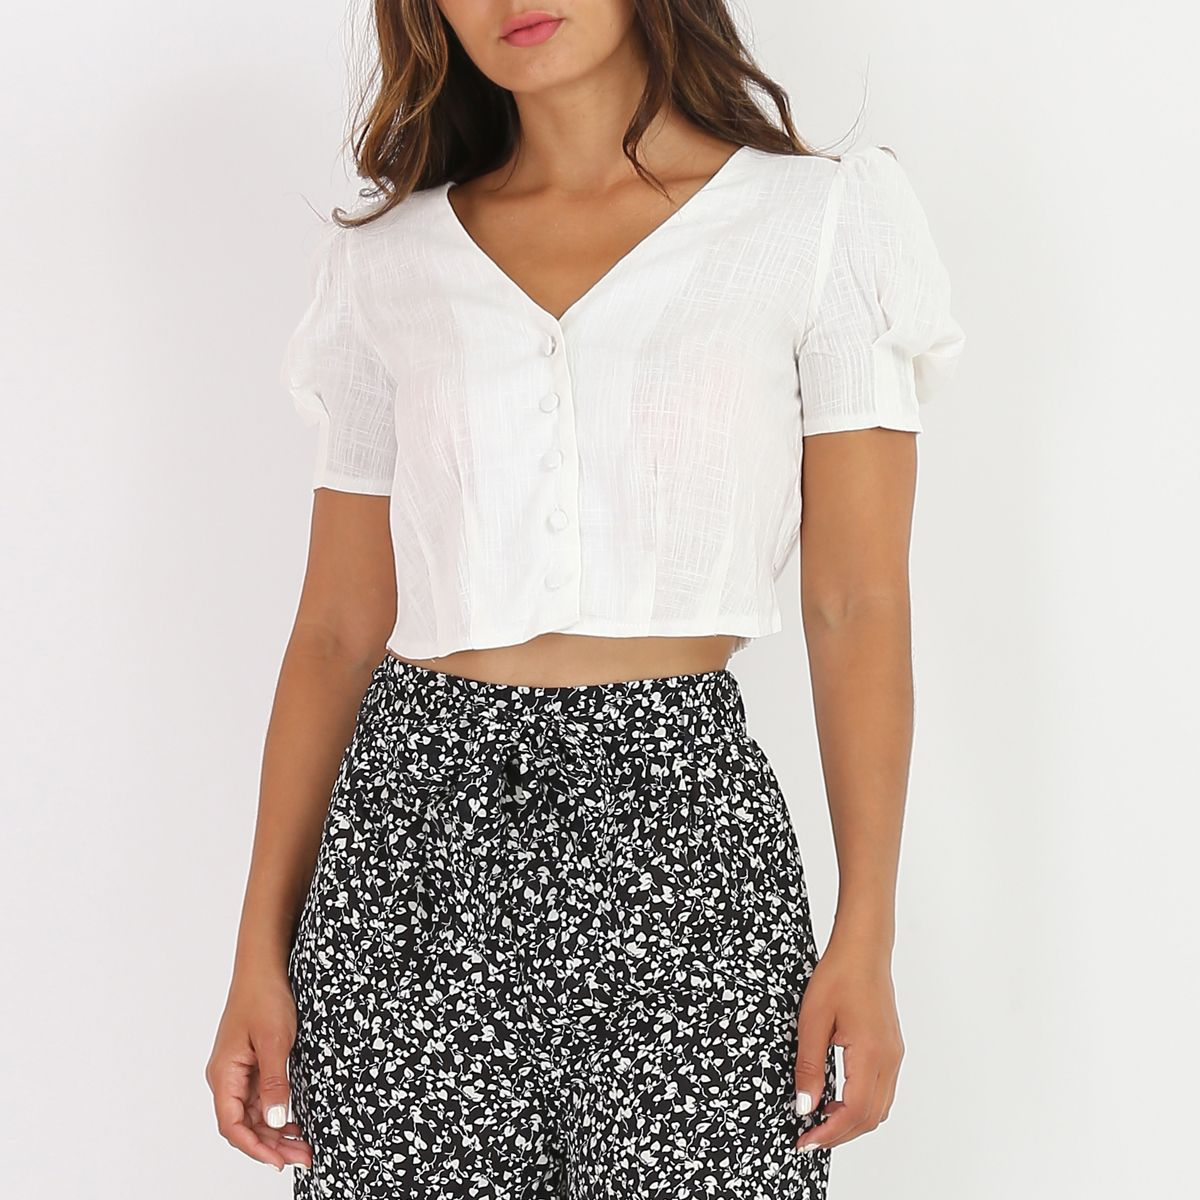 Chemisier cropped blanc style lin